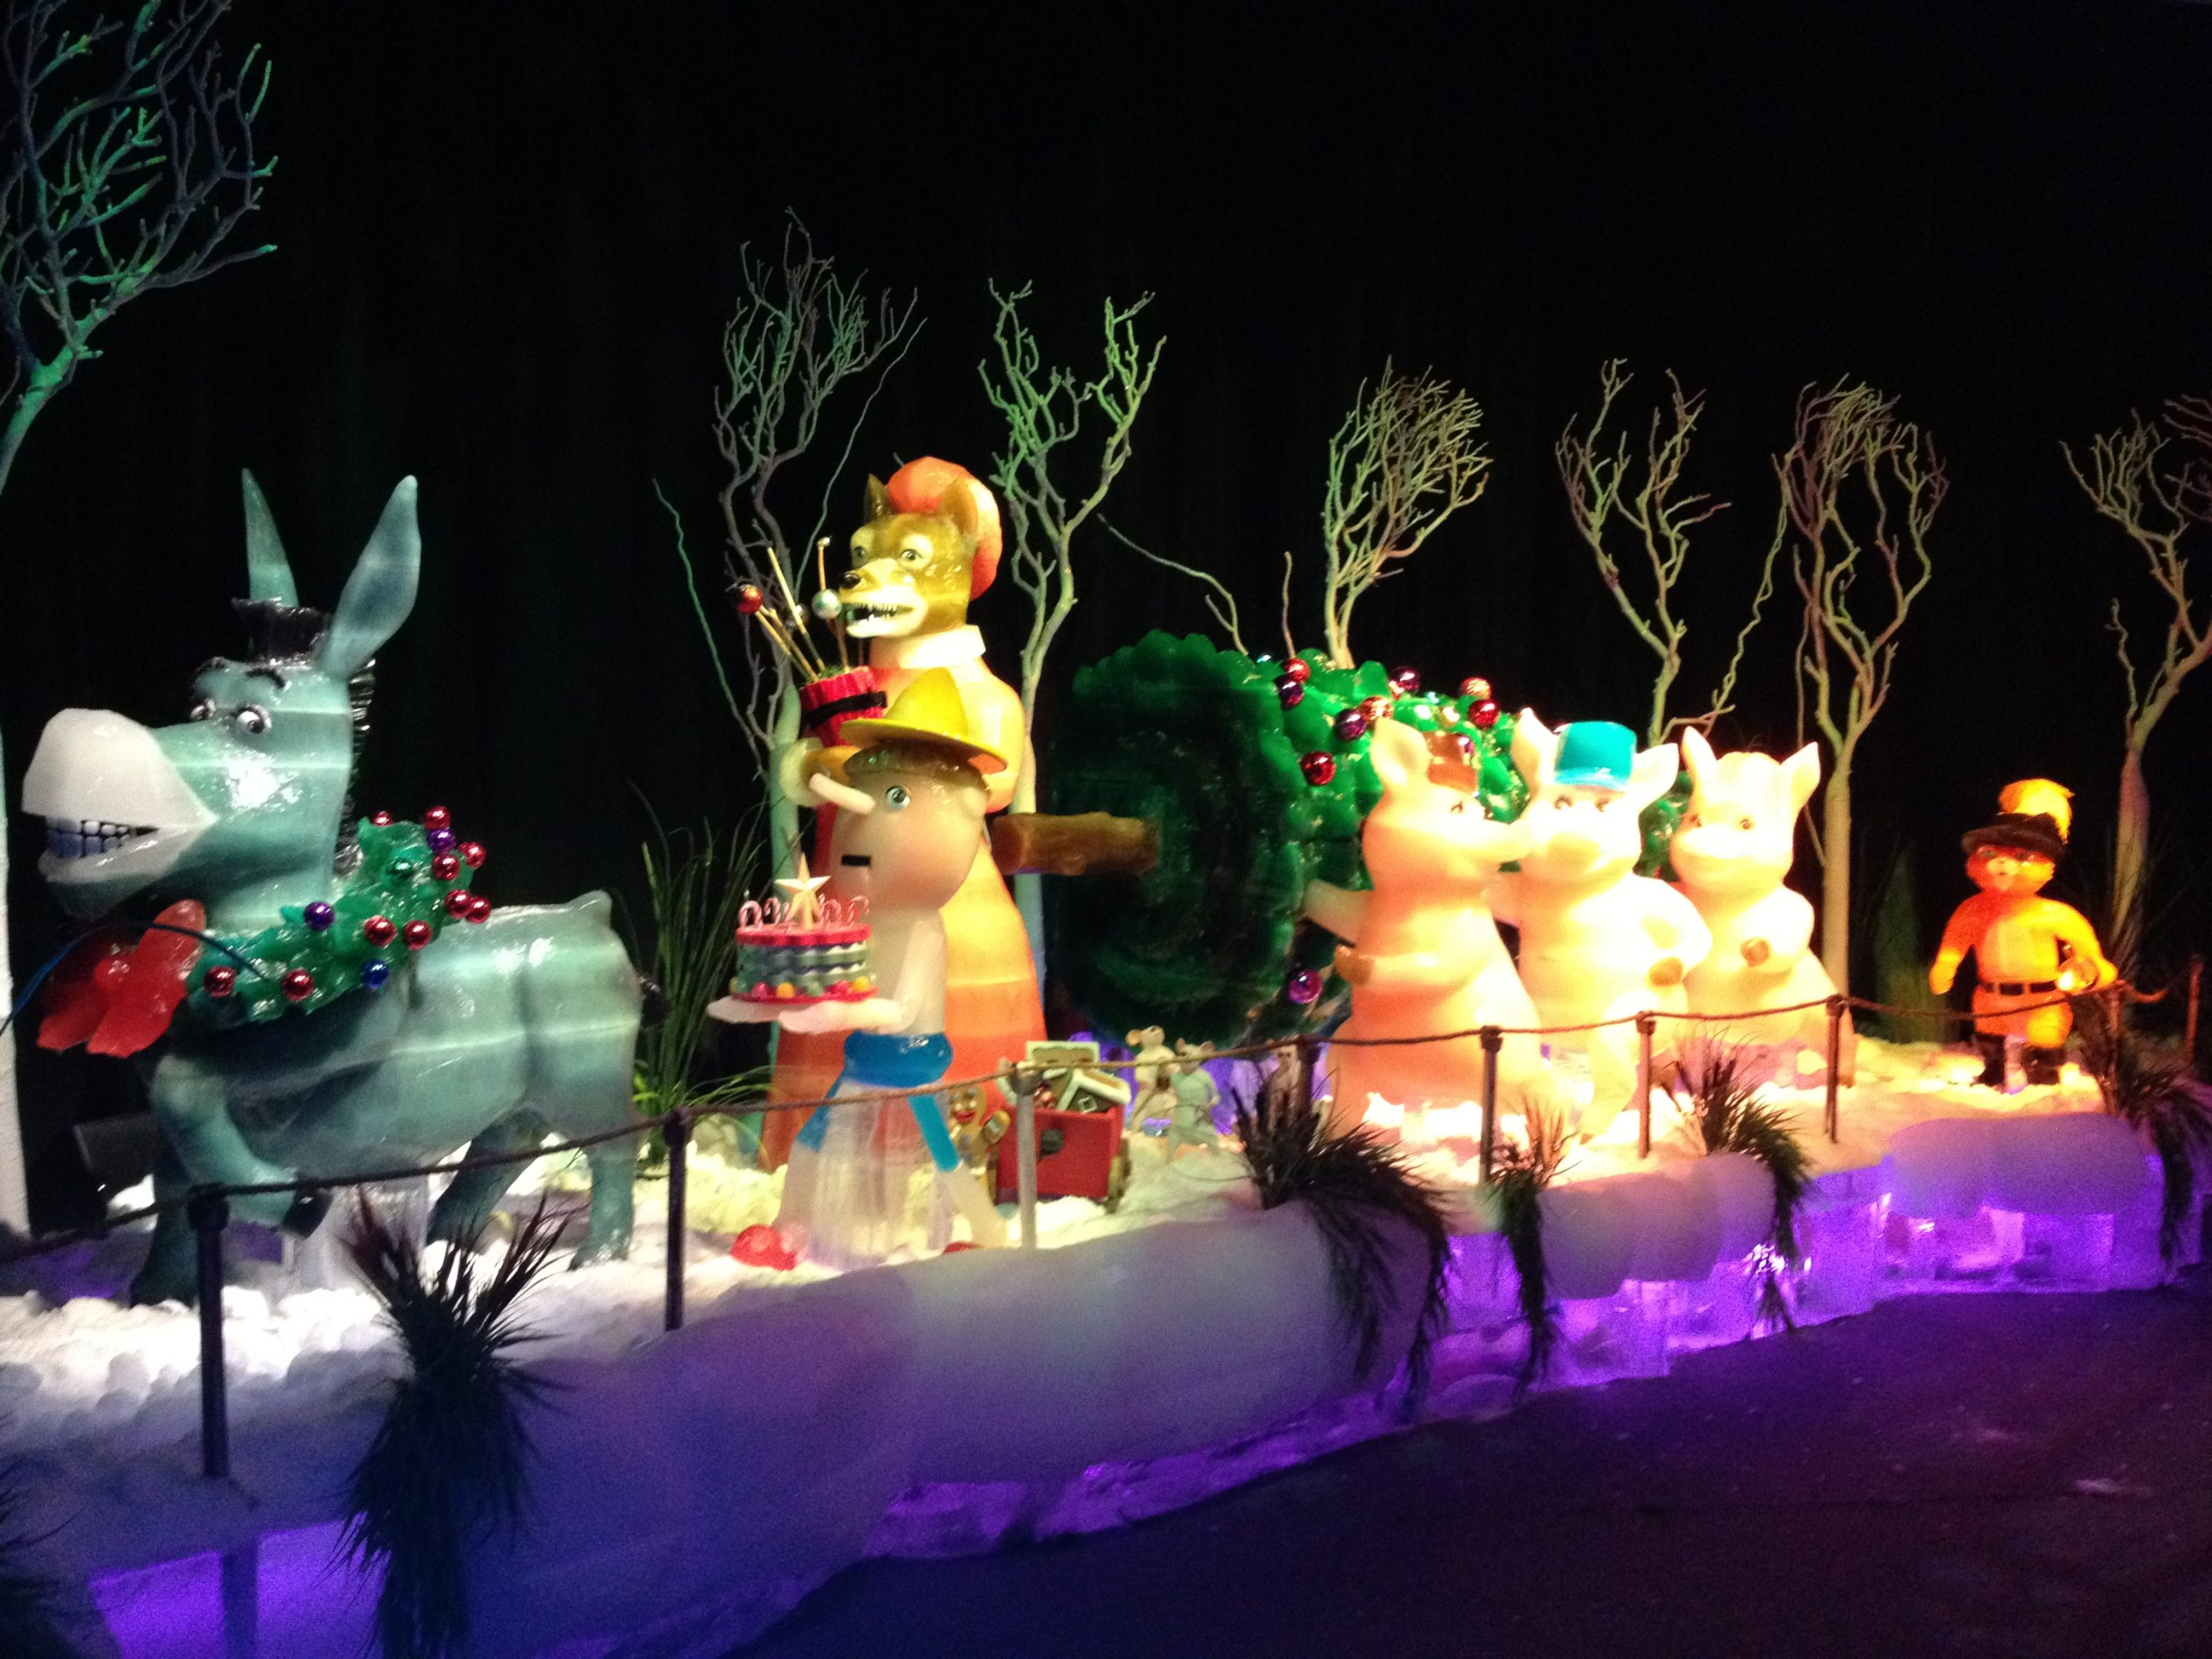 Experience Cold and Snow in Florida at Gaylord Palms ICE-Shrek the Halls!